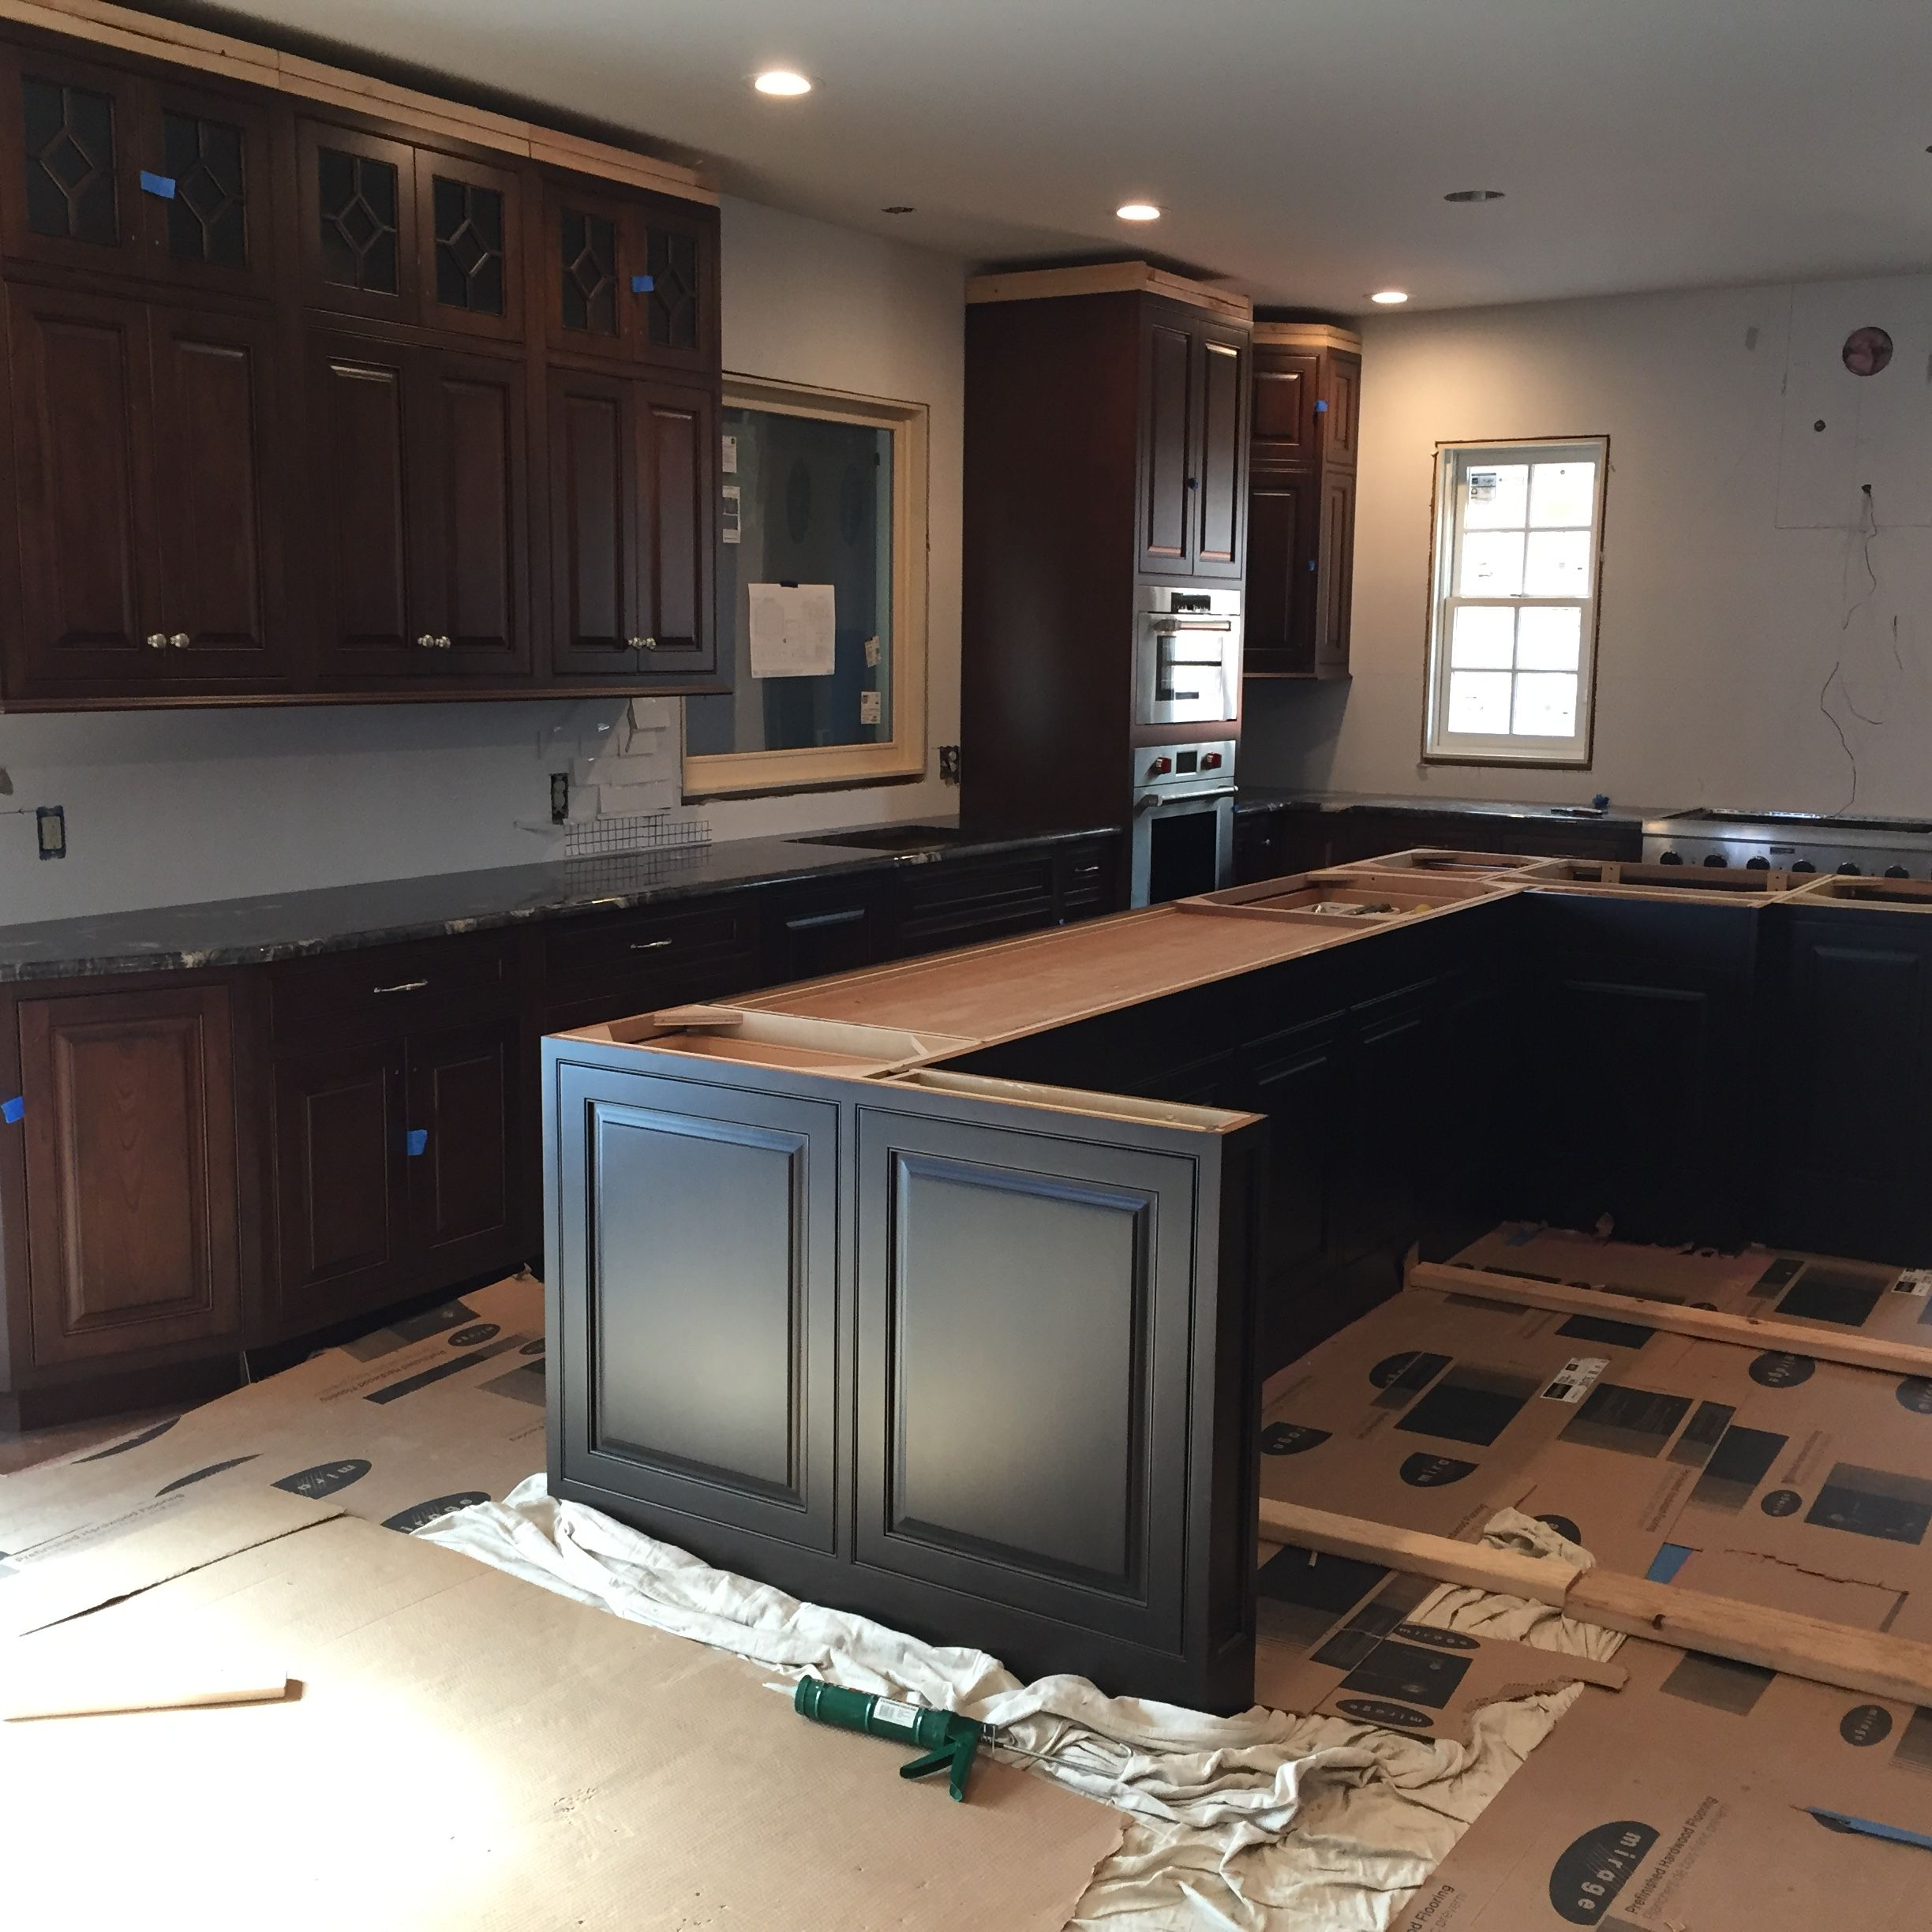 Wellsford Cabinetry In Stowe Pa Incredible Workmanship New Kitchen Kitchen Cabinetry